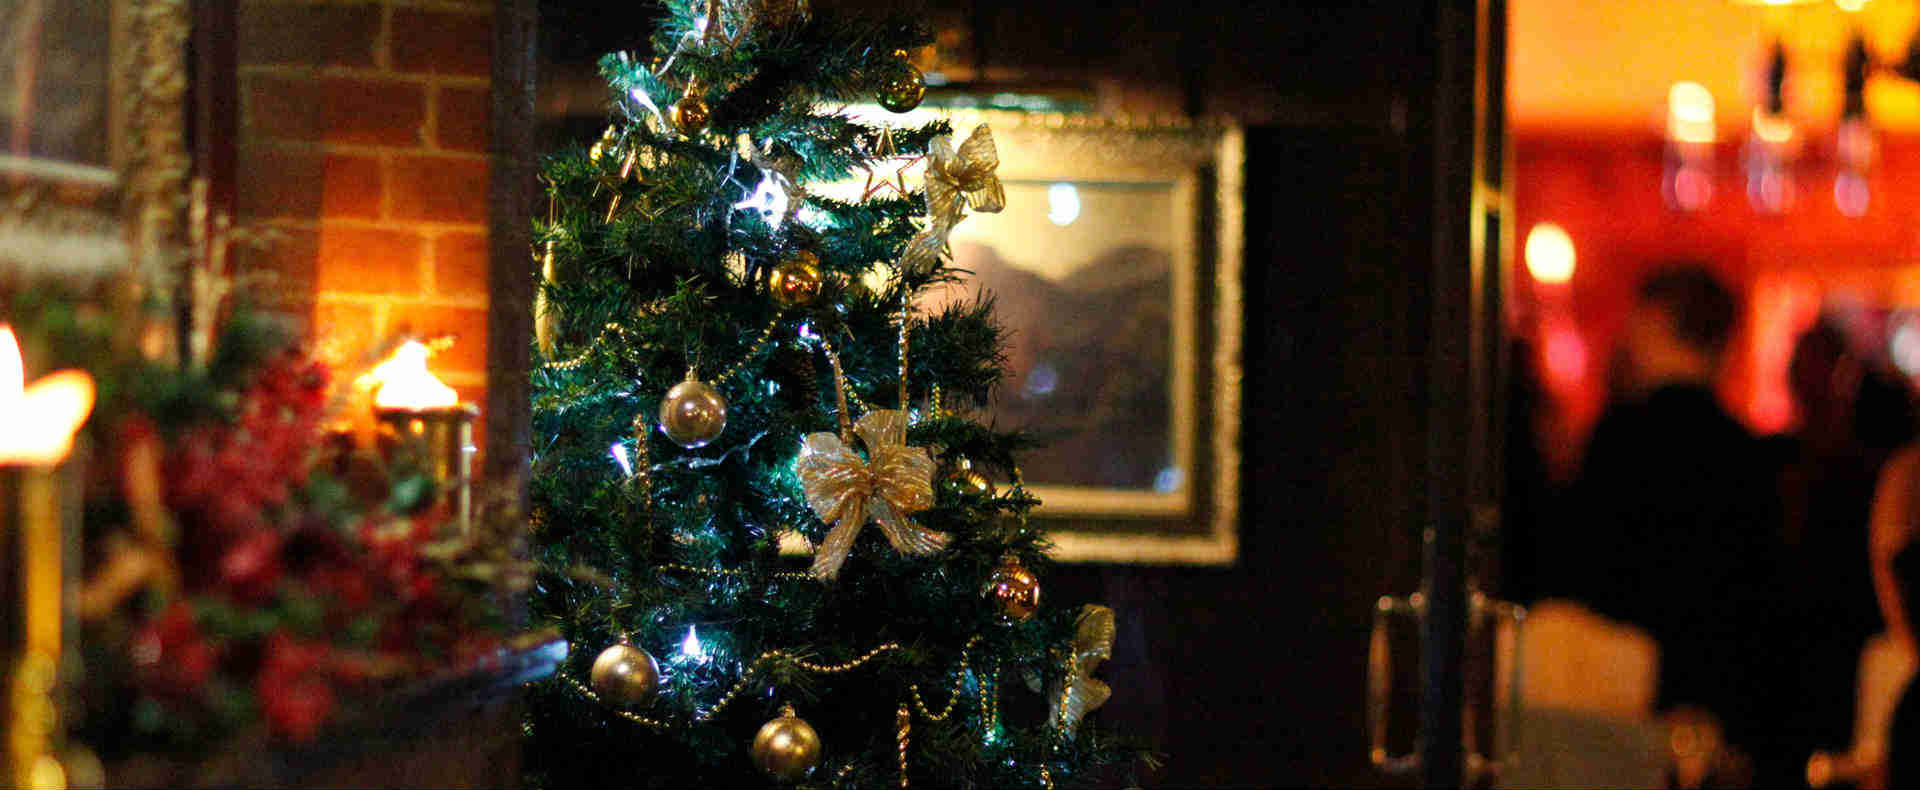 Where To Go For Christmas Day Lunch1 | Montagu Arms